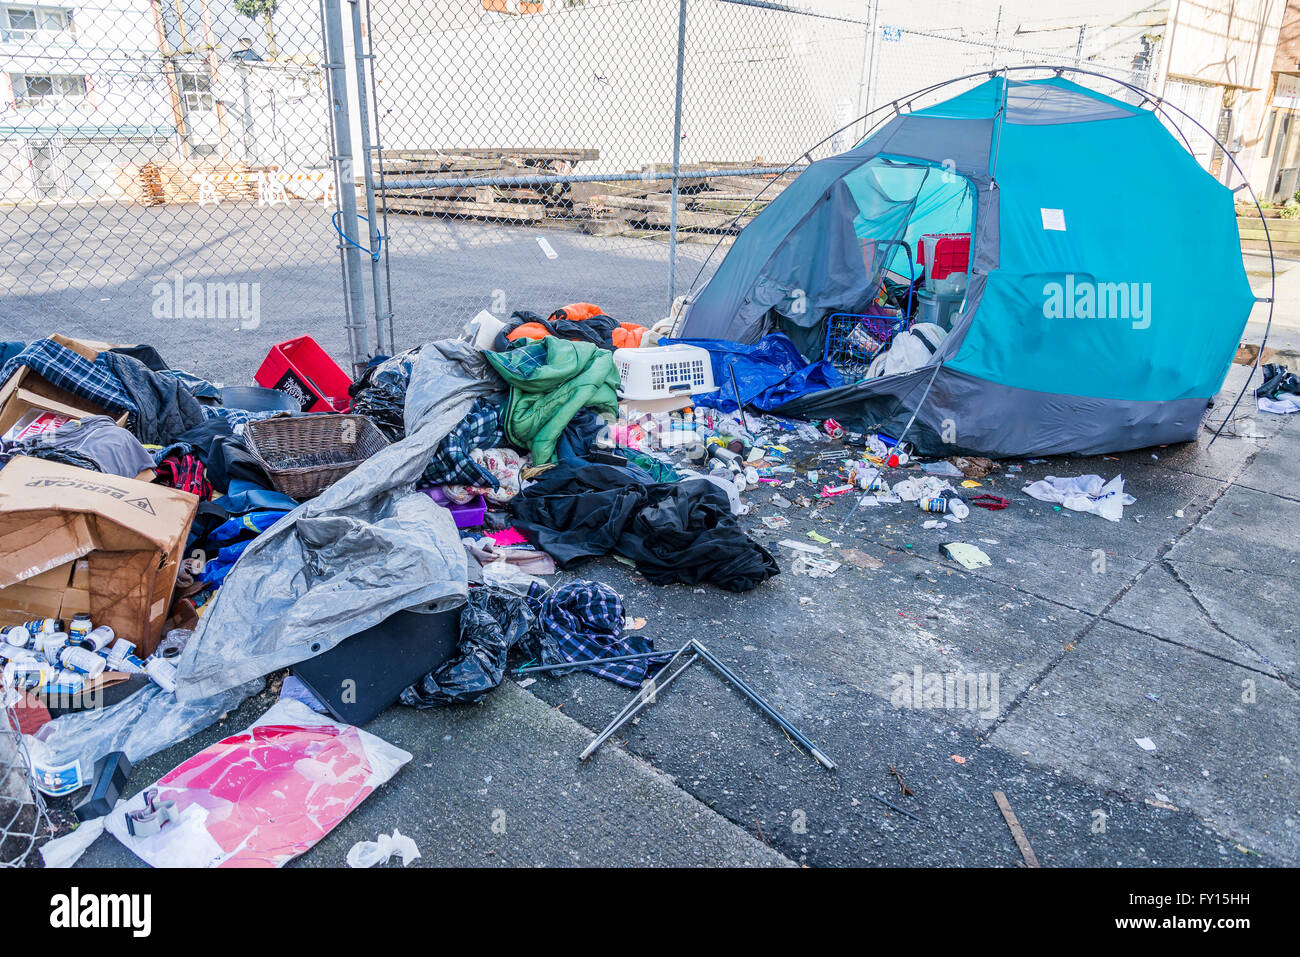 Messy garbage around and in homeless persons tent. DTES, Vancouver, British Columbia, Canada - Stock Image